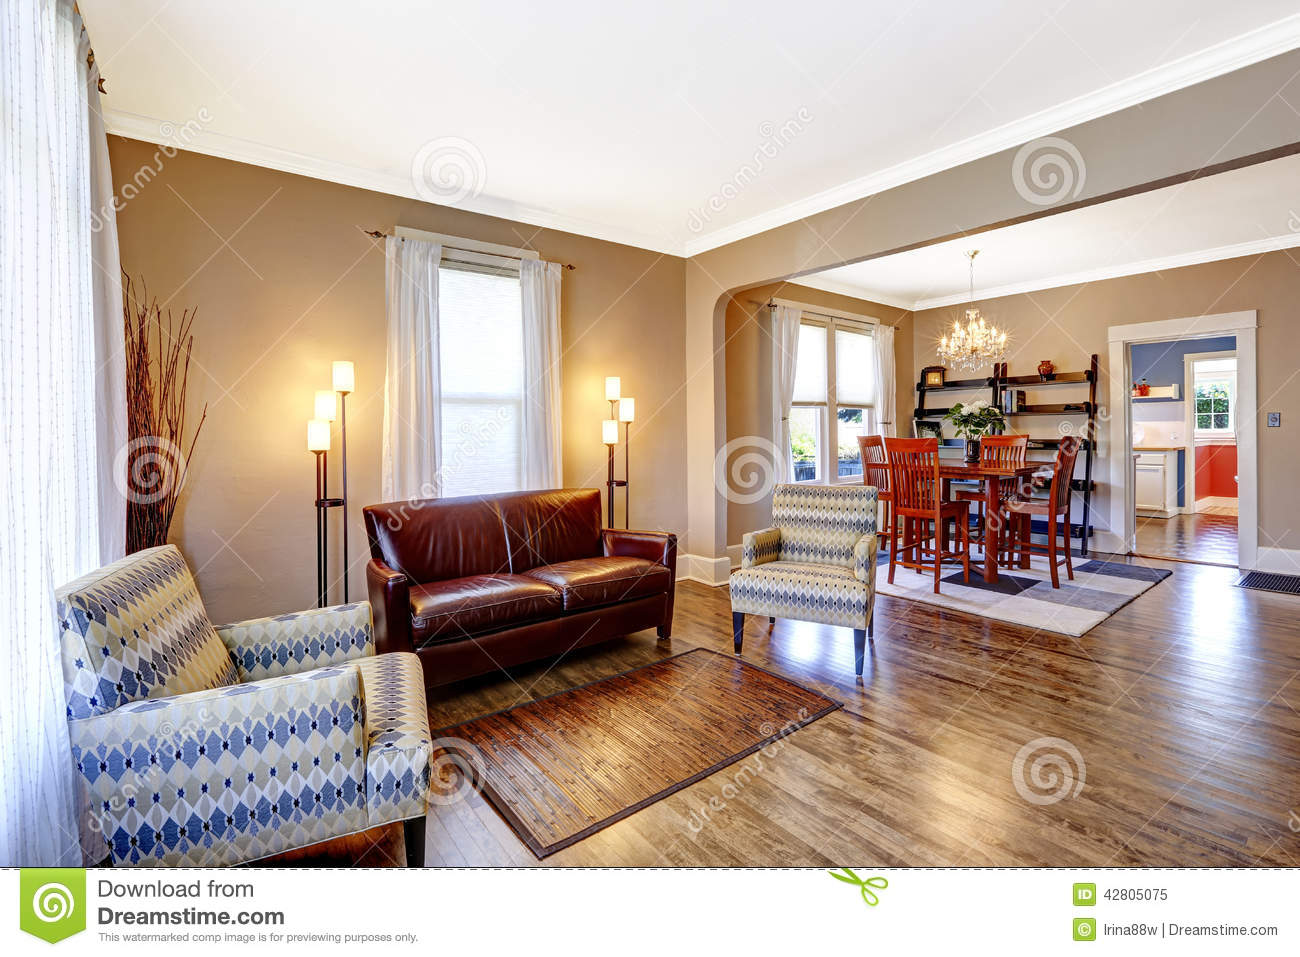 Living Room Interior With Leather Couch And Two Chairs